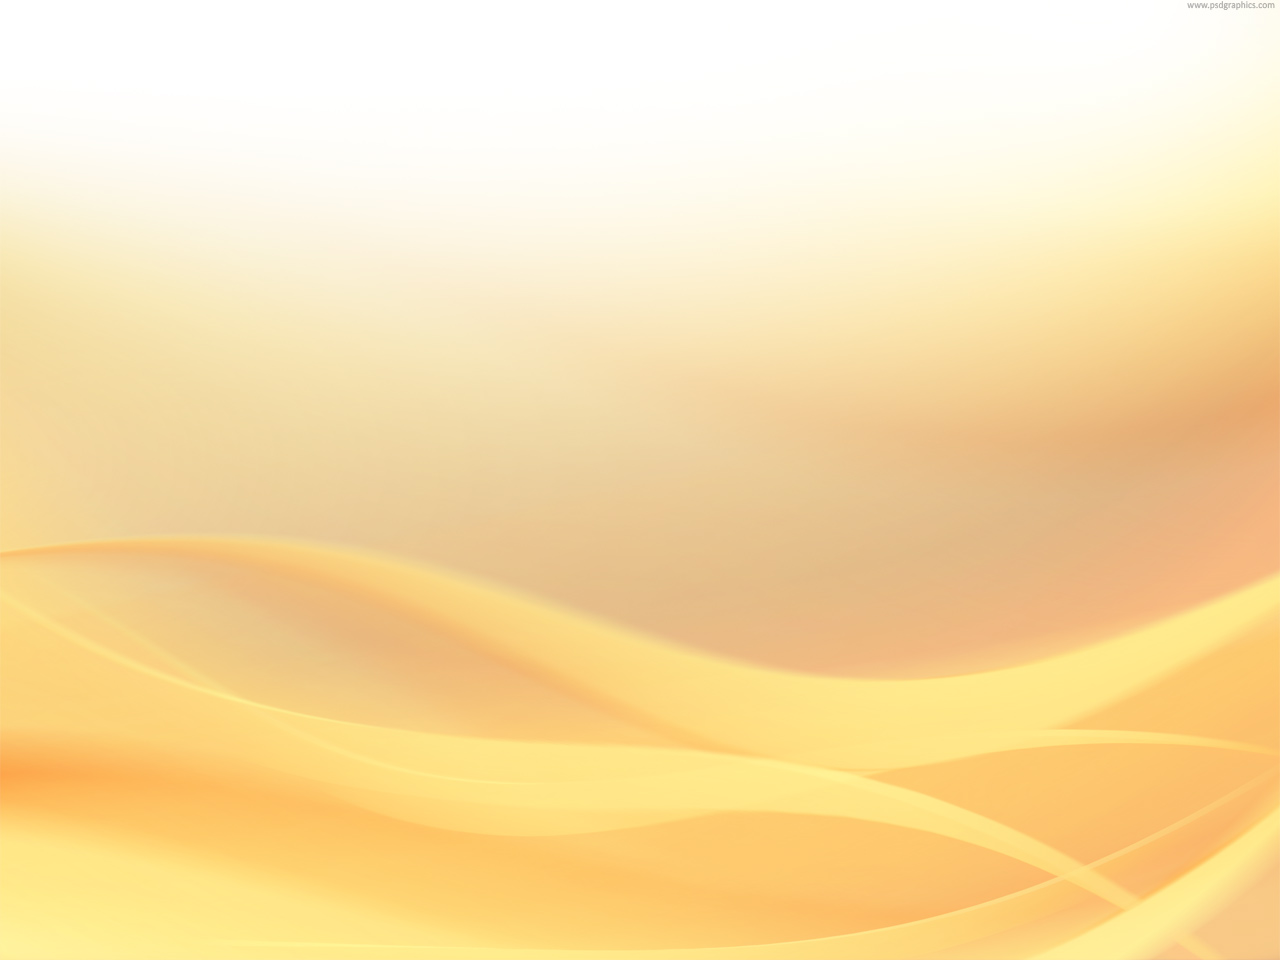 medium size preview 1280x960px yellow waves background